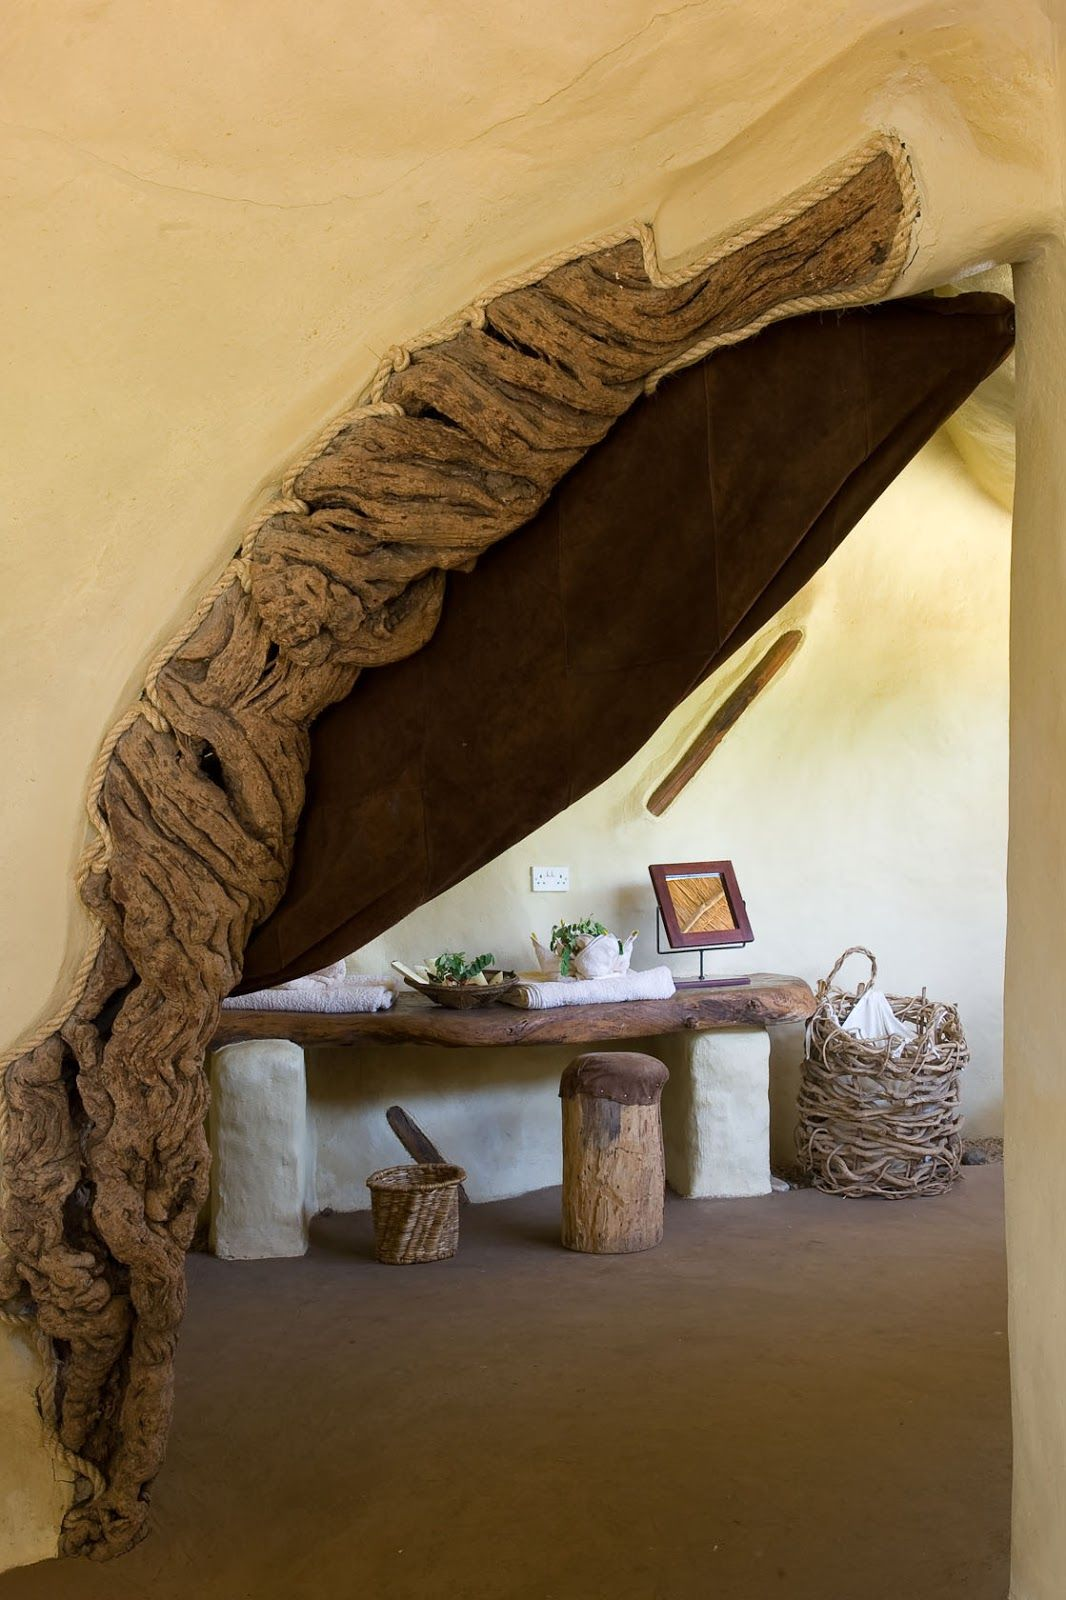 Garden and home zambia  chongwe river house  architecture  Pinterest  Free credit report